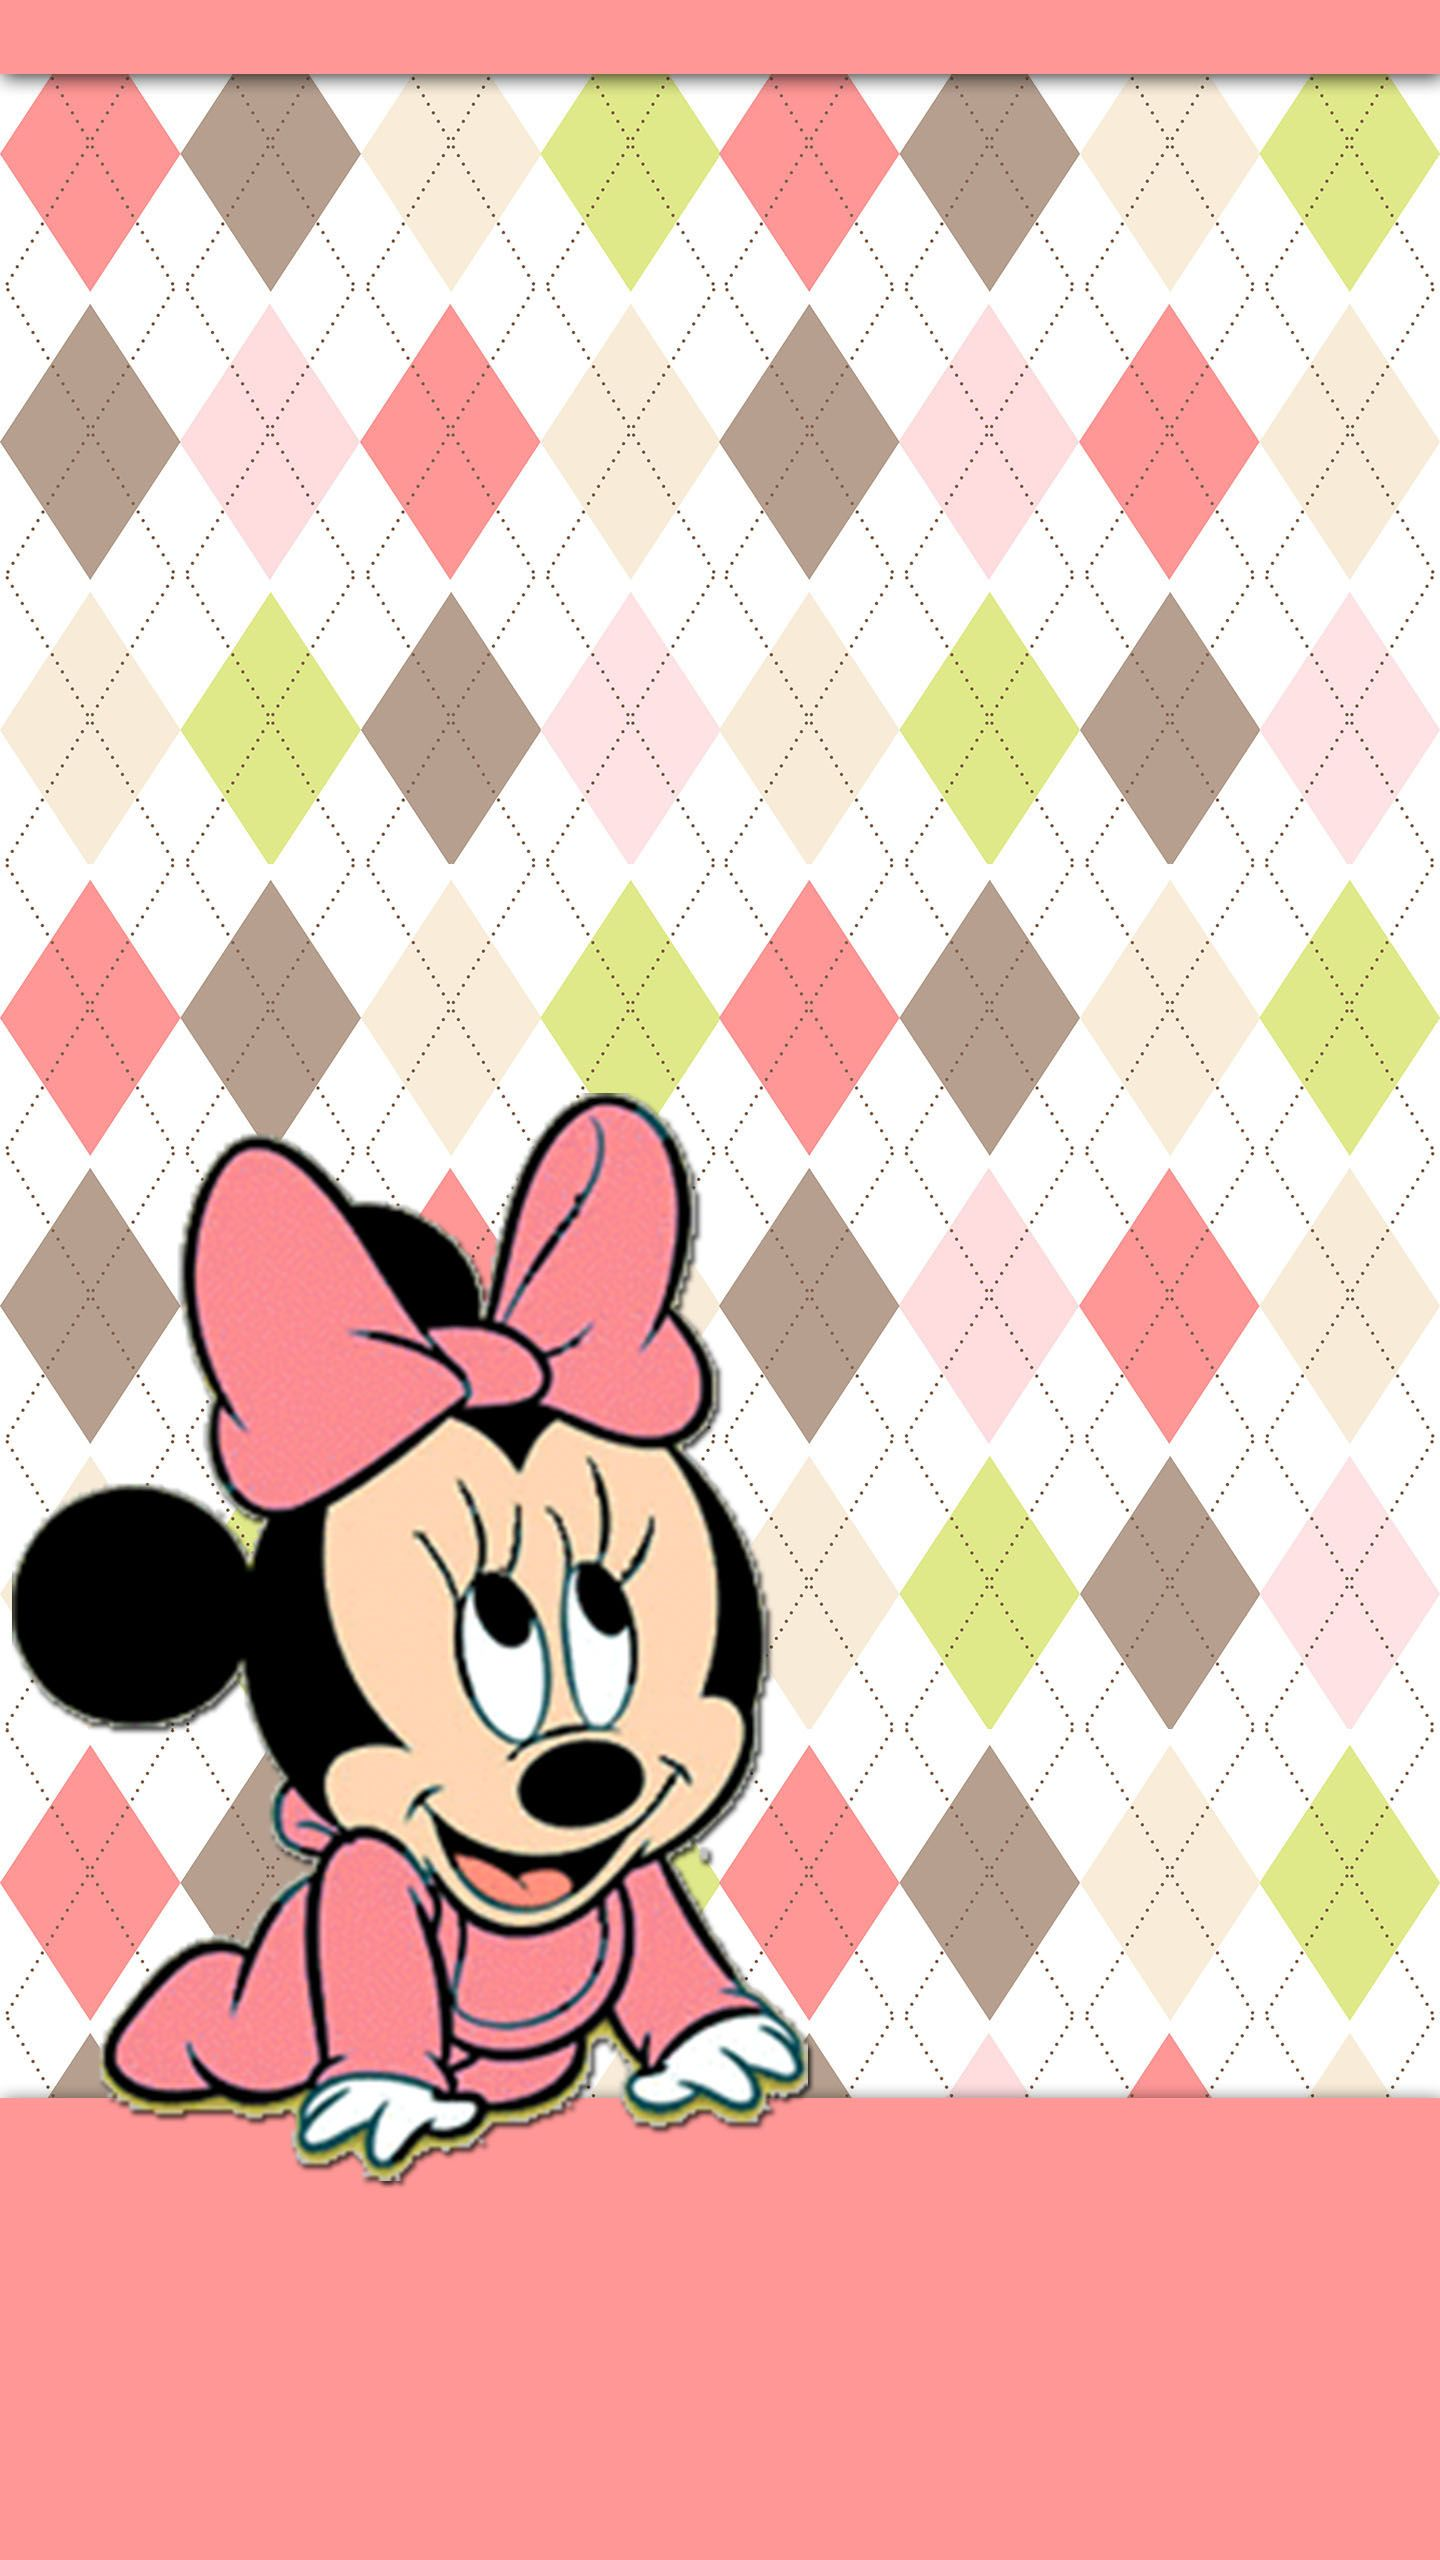 BABY MINNIE MOUSE IPHONE WALLPAPER BACKGROUND IPHONE